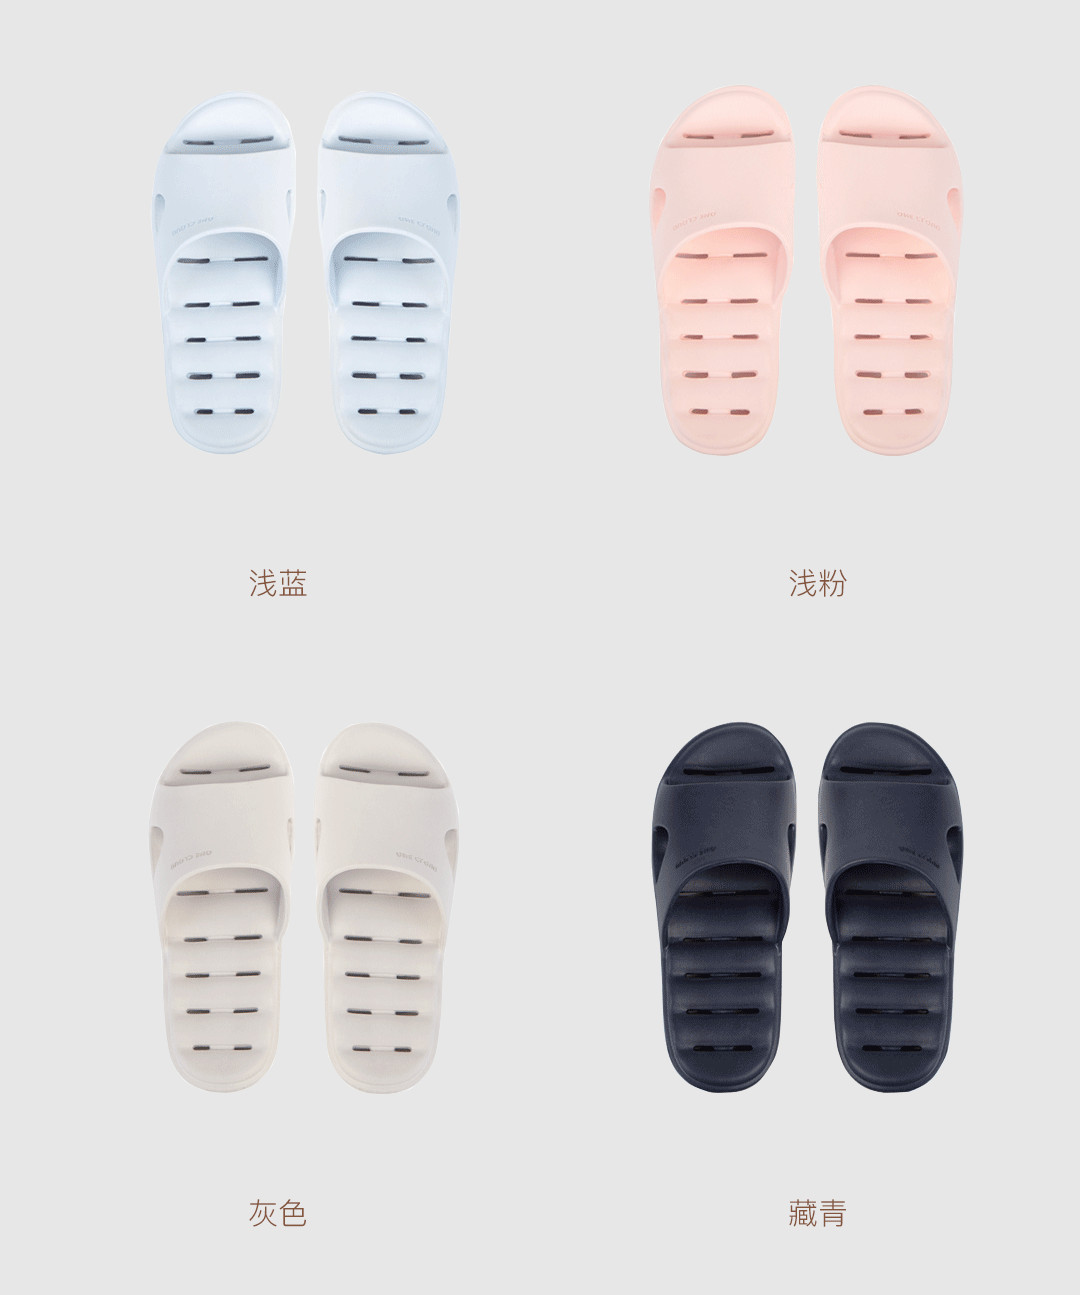 2colors Xiaomi Youpin Jordan Judy Bathroom Slippers For Men And Women In Summer Home Anti-skid Design Light And Comfortable Smart Remote Control